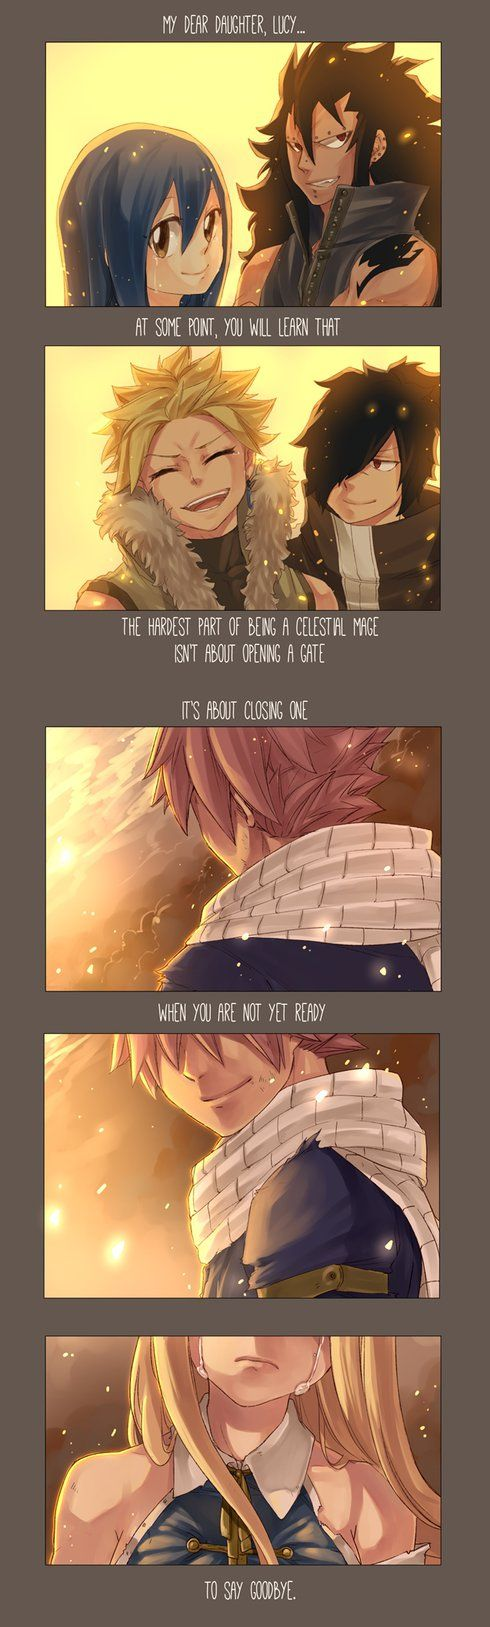 Gate closed (Spoilers of the new chapter... kinda? by blanania on DeviantArt